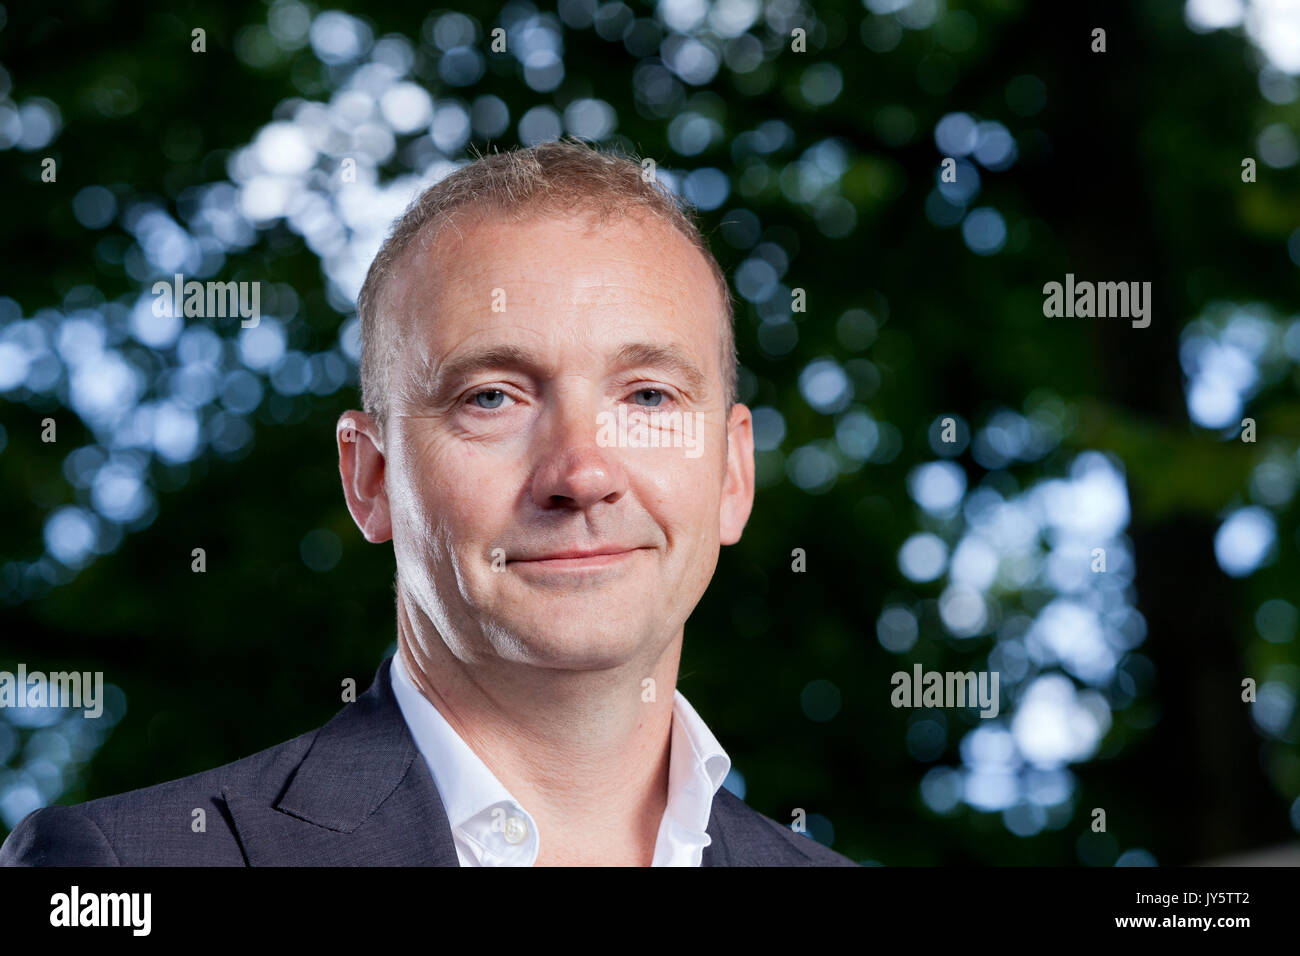 Edinburgh, UK. 19th Aug, 2017. Jerry Brotton, the author and internationally recognised expert in the history of cartography, appearing at the Edinburgh International Book Festival. Credit: GARY DOAK/Alamy Live News - Stock Image